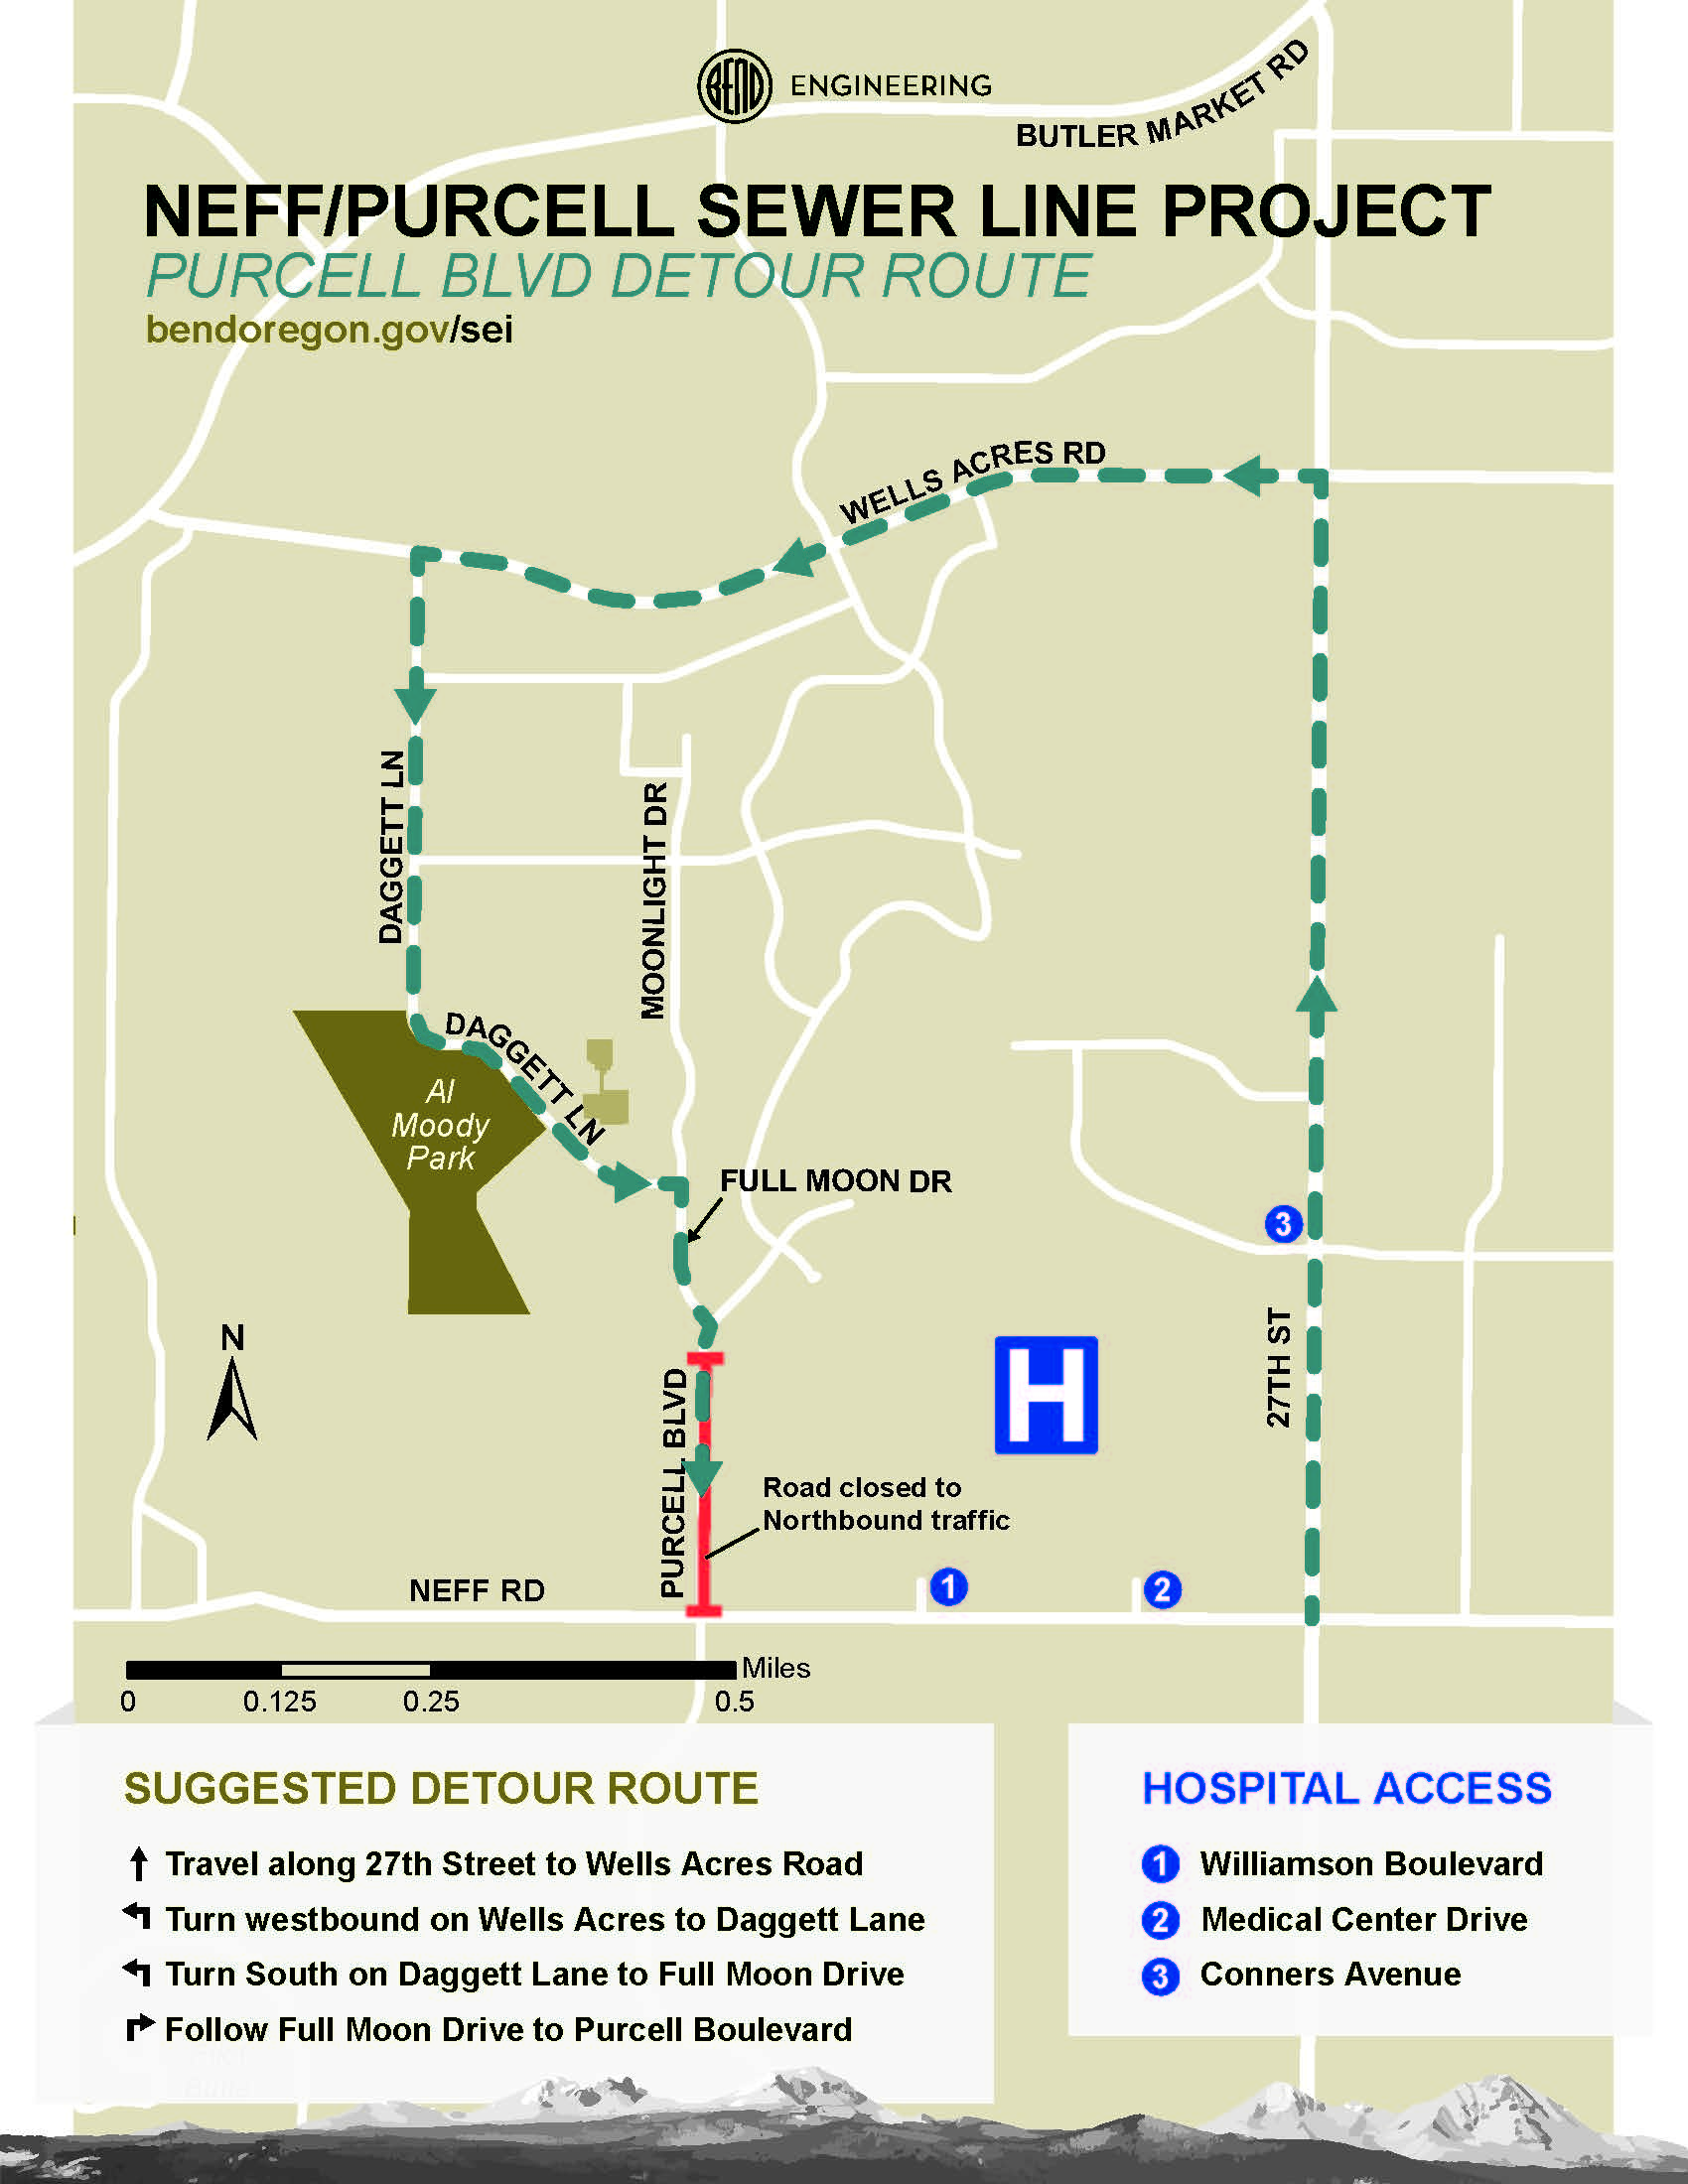 Purcell Blvd detour route map. To access Purcell Blvd north of Neff Rd, travel north on 27th St, then turn westbound on Wells Acres Rd to Daggett Ln, then turn south on Daggett Ln to Full Moon Dr. Follow Full Moon Dr to Purcell Blvd.